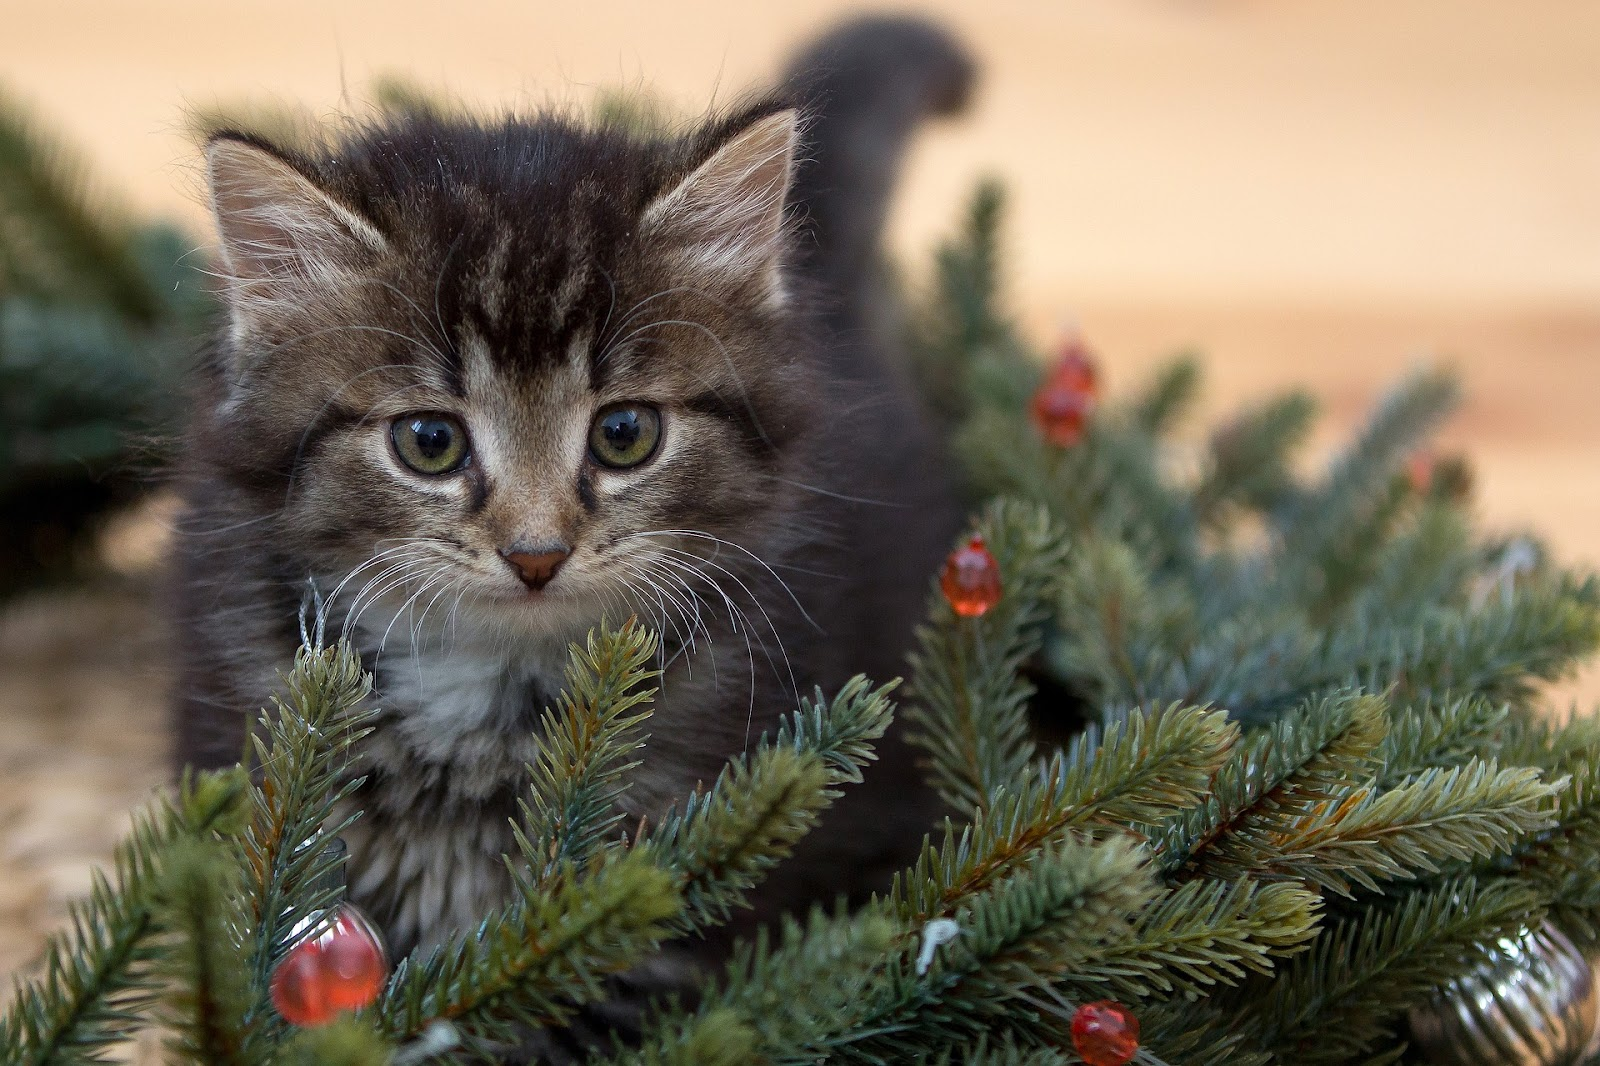 kitten in artificial Christmas tree branches with red holiday lights